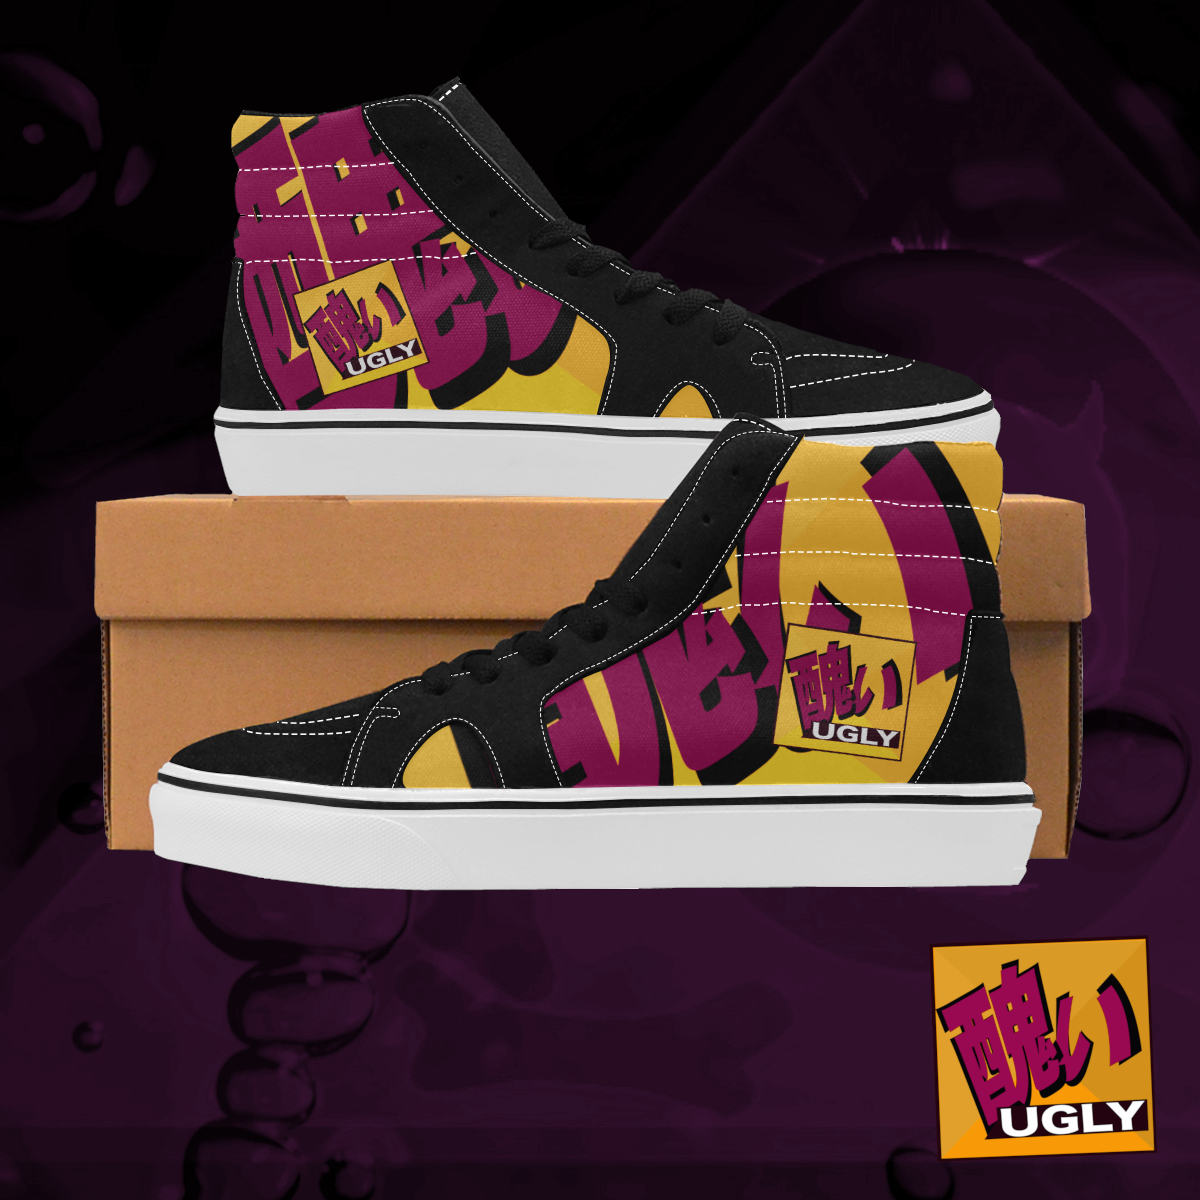 UGLY logo high top skate shoes The Lowest of Low Tang